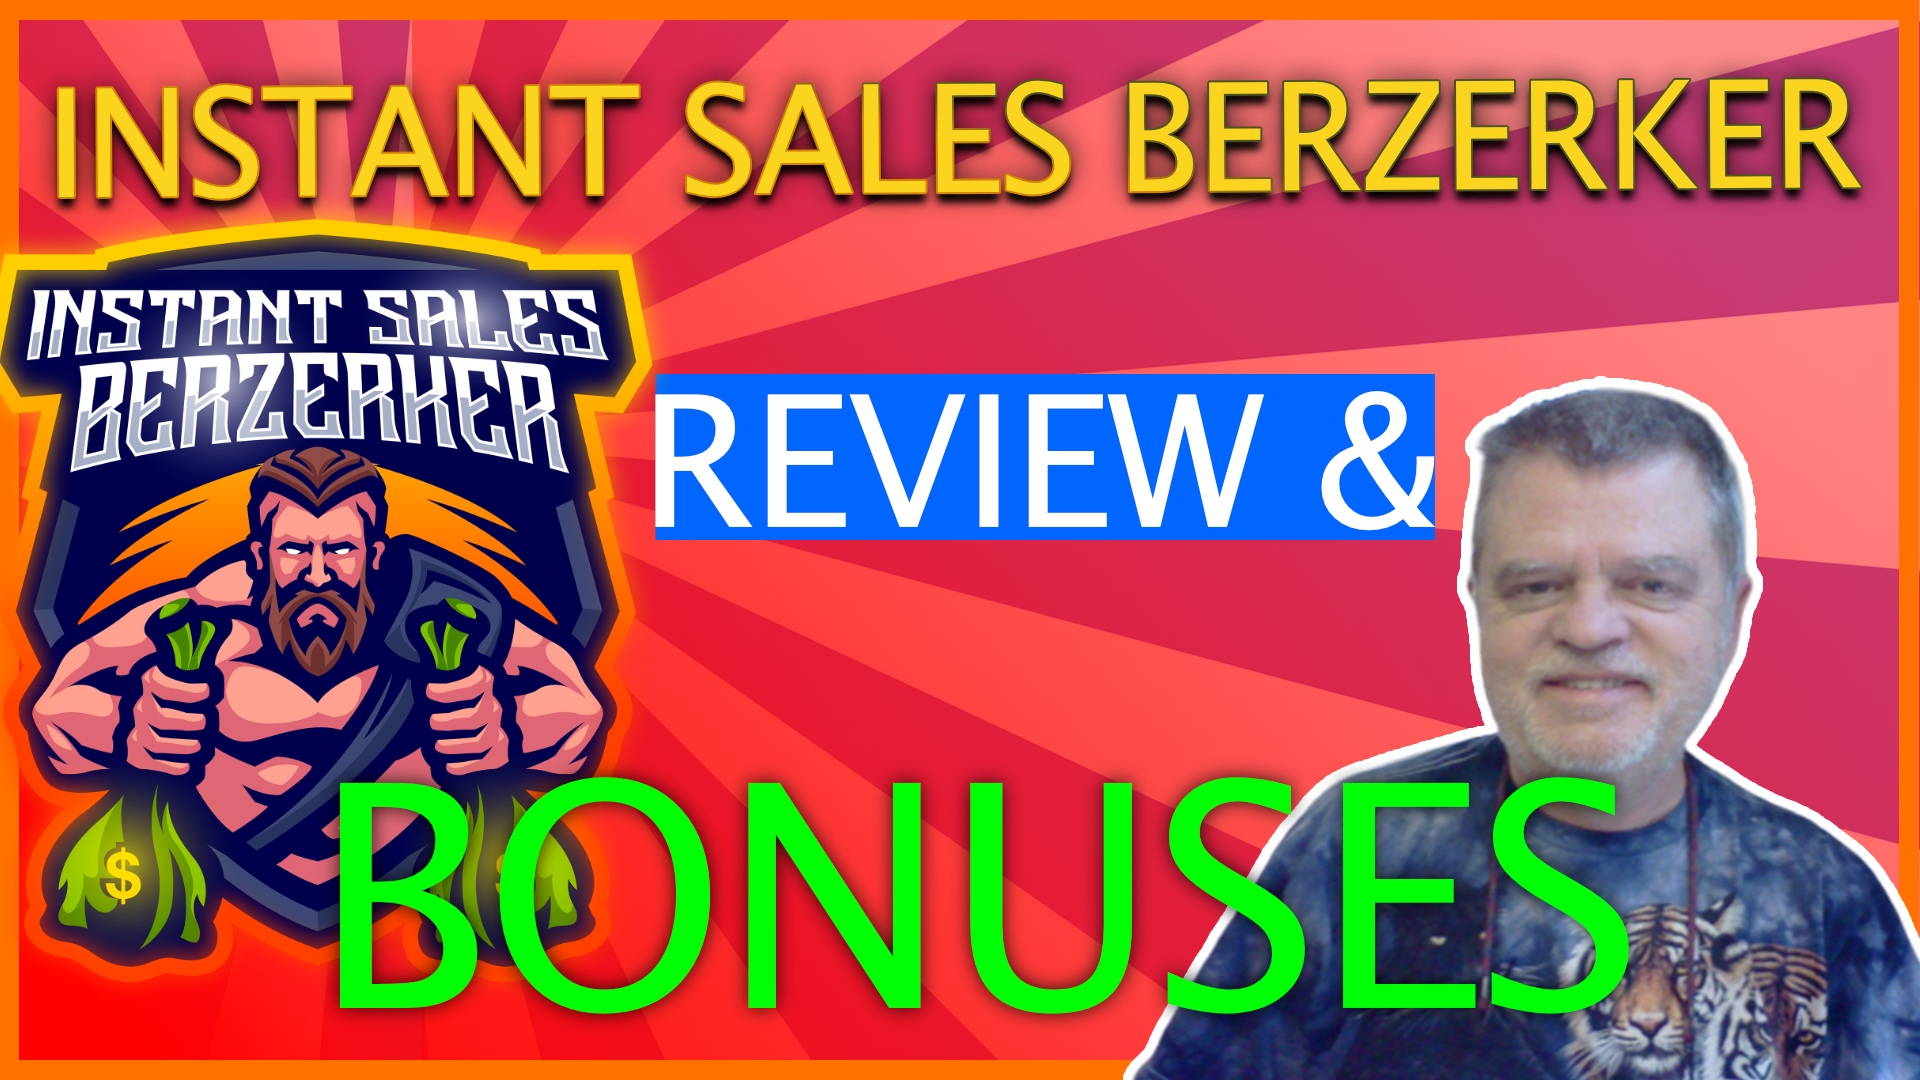 Instant Sales Berzerker Review